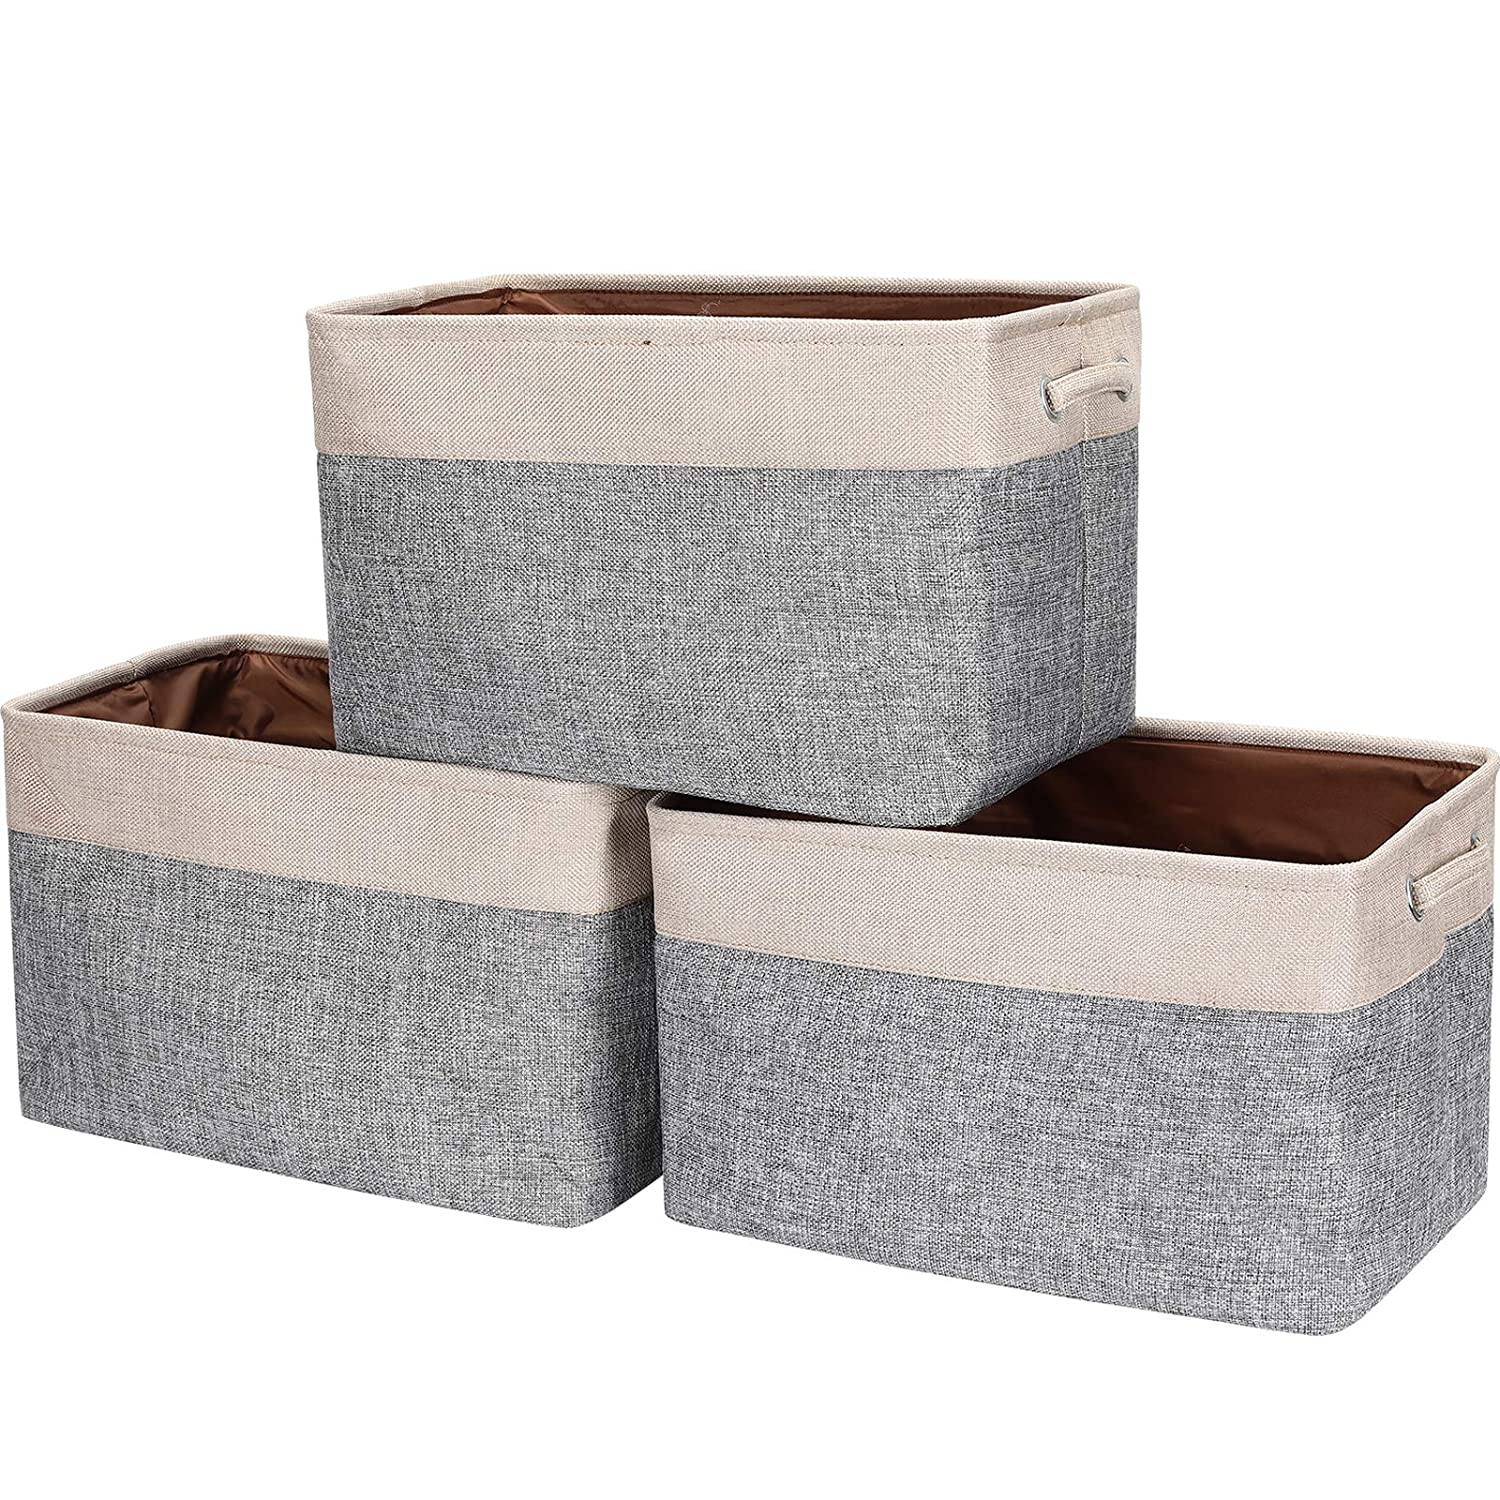 HOKEMP Foldable Storage Bins [3-Pack] - 15 x 11 x 9.8 inch Fabric Storage Basket Collapsible Durable Organizer Bin with Carry Handles for Nursery, Home Closet, Toys, Towels, Laundry - Beige & Gray